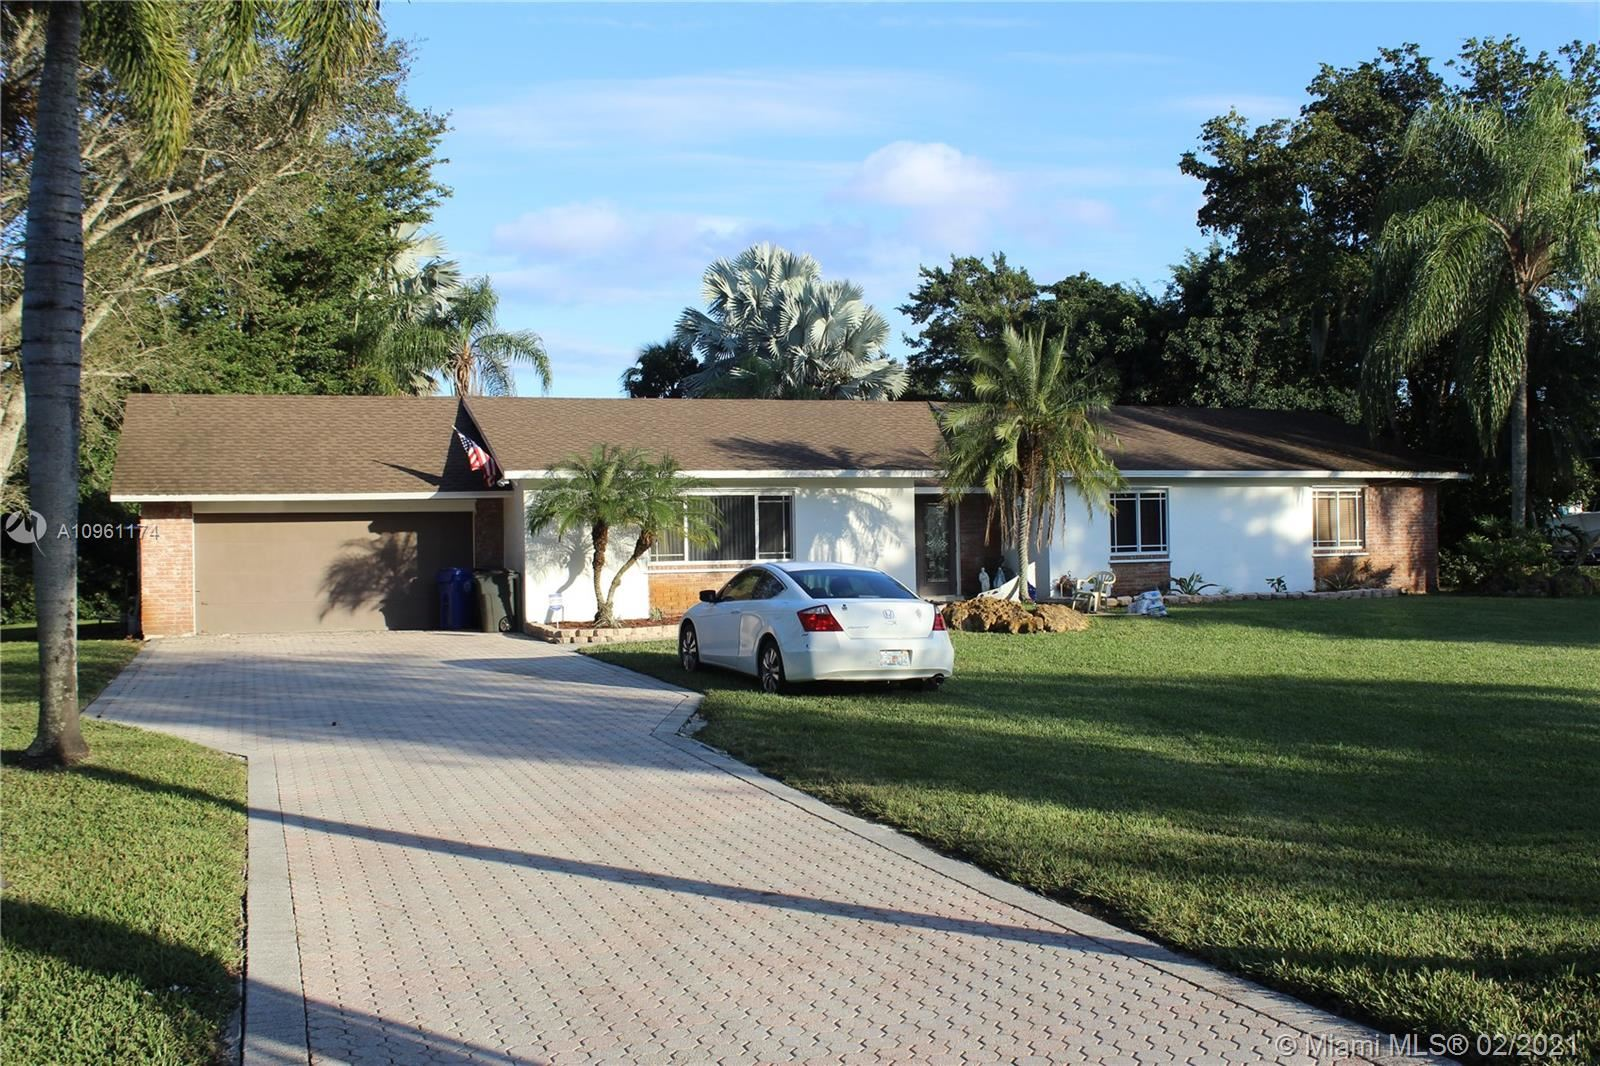 4910 SW 164th Ter, SouthWest Ranches, FL 33331 - #: A10961174